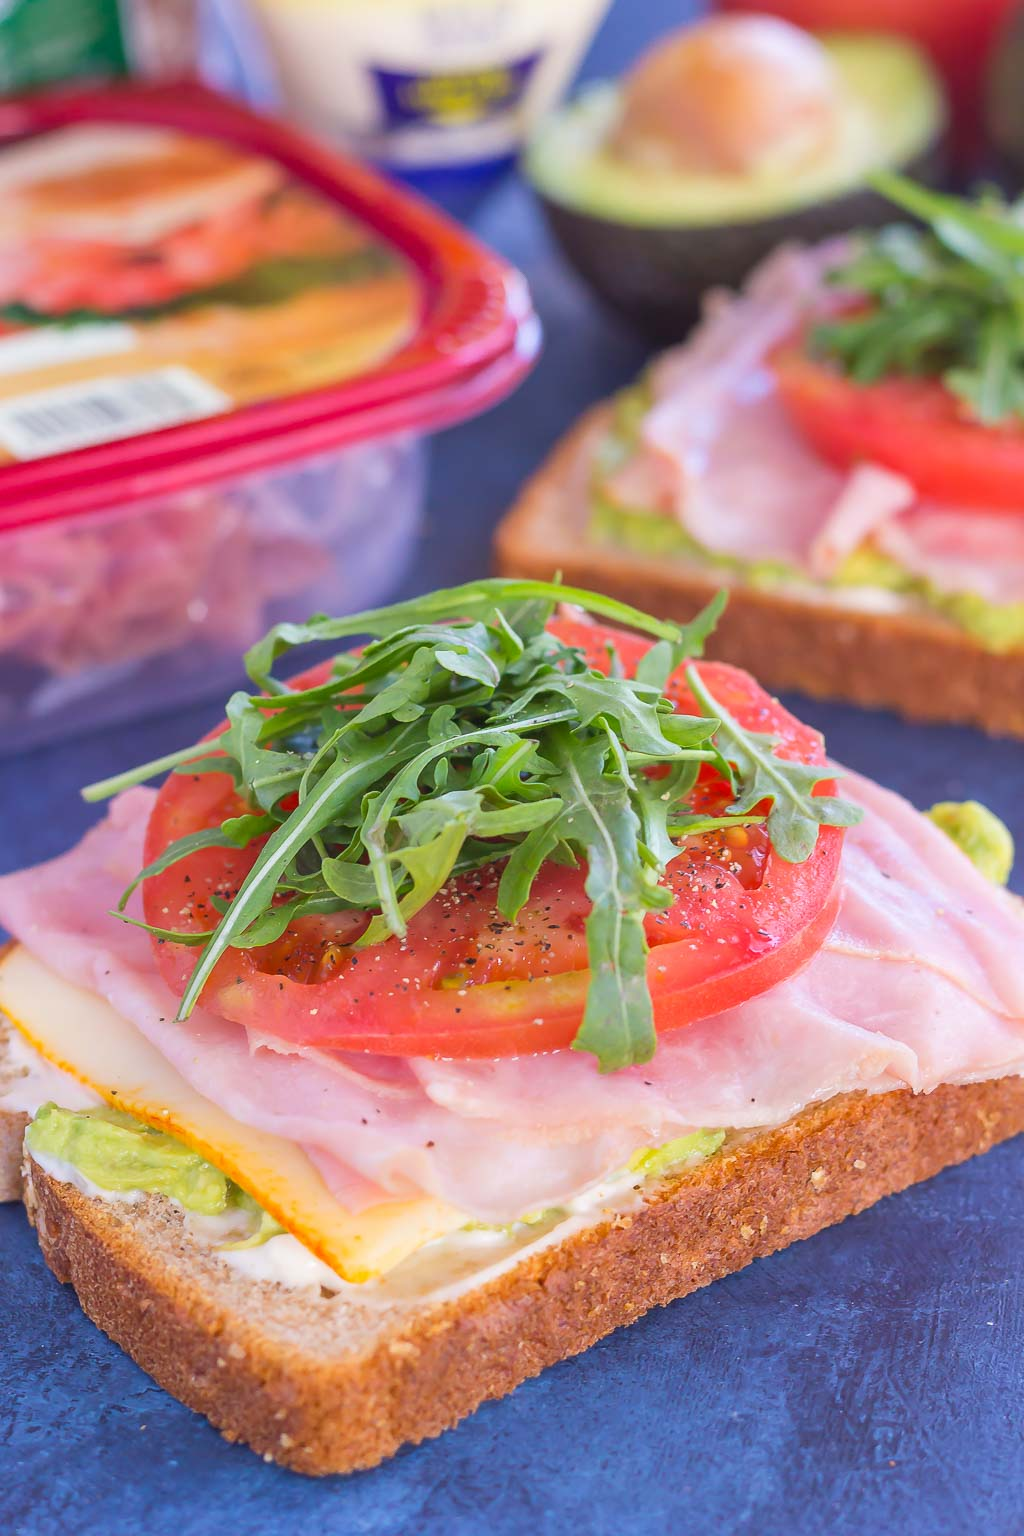 This Ham and Avocado Open-Faced Sandwich is simple, fresh, and perfect for a light lunch or dinner. Honey ham and tangy cheese is piled high on a slice of thick bread, then garnished with mayonnaise, avocado, and fresh tomato. With just six ingredients and hardly any prep time involved, you can have this easy sandwich ready in no time!